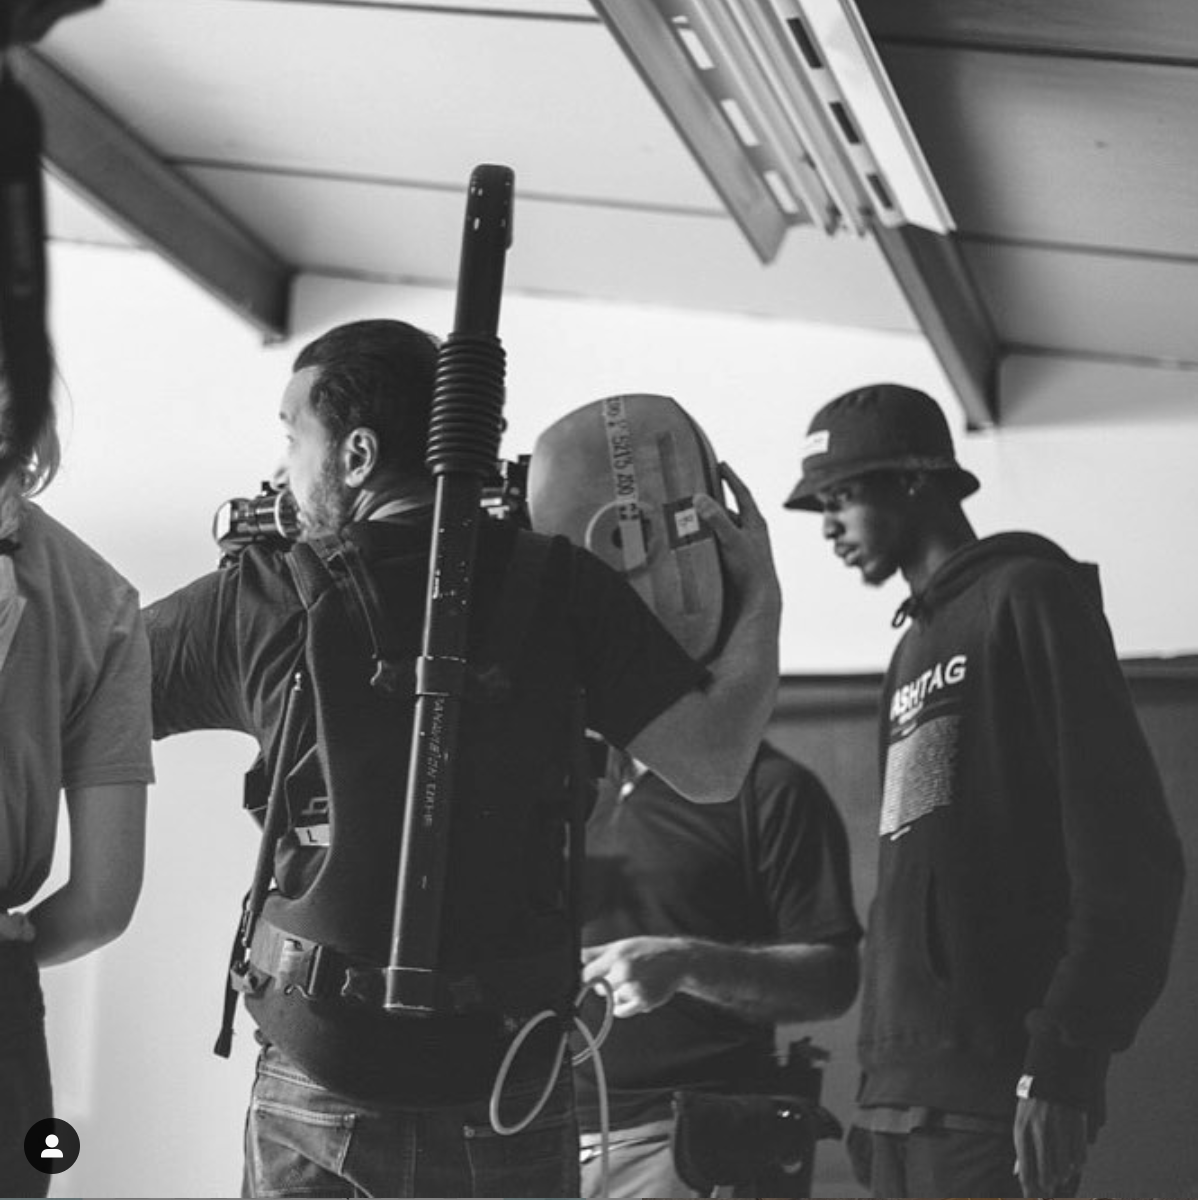 Professional Photography Black Man Standing Behind Camera On Music Video Production With Crew Watching Performance